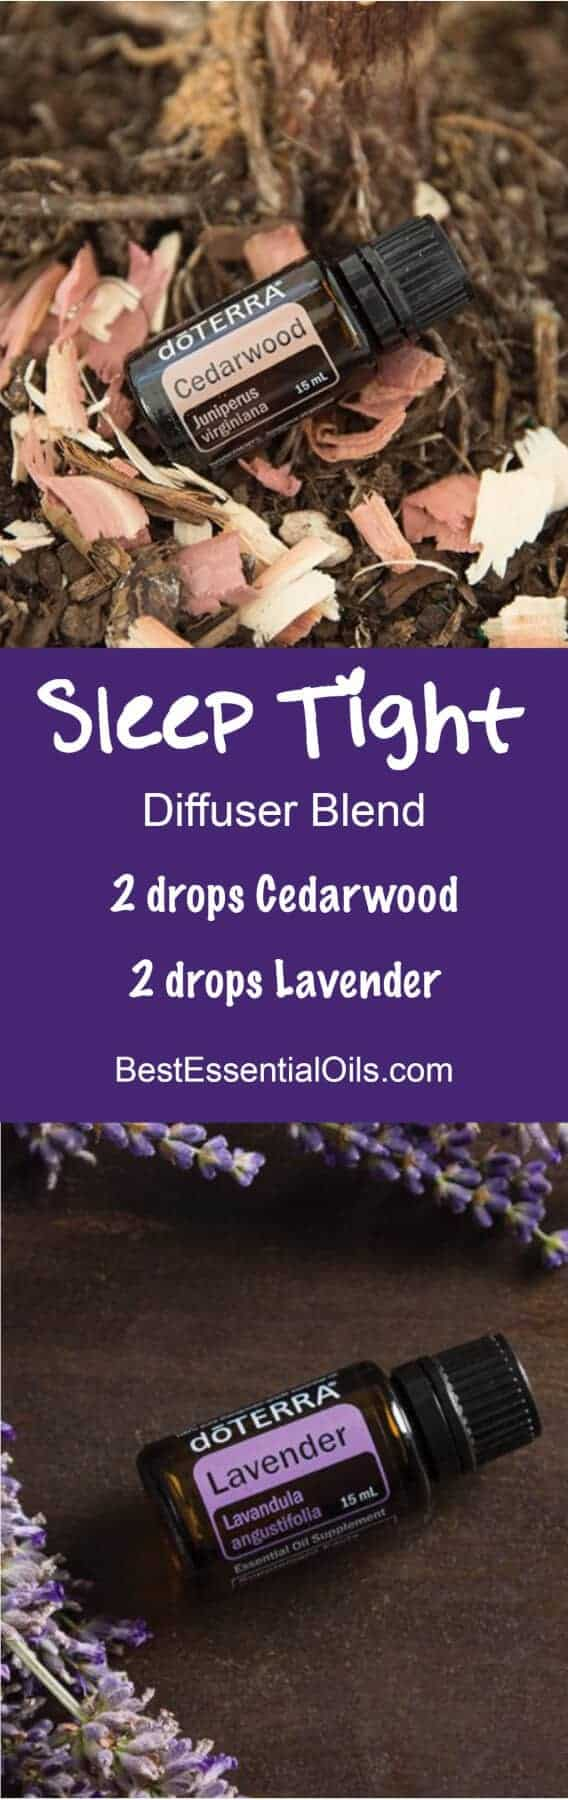 Sleep Tight doTERRA Diffuser Blend